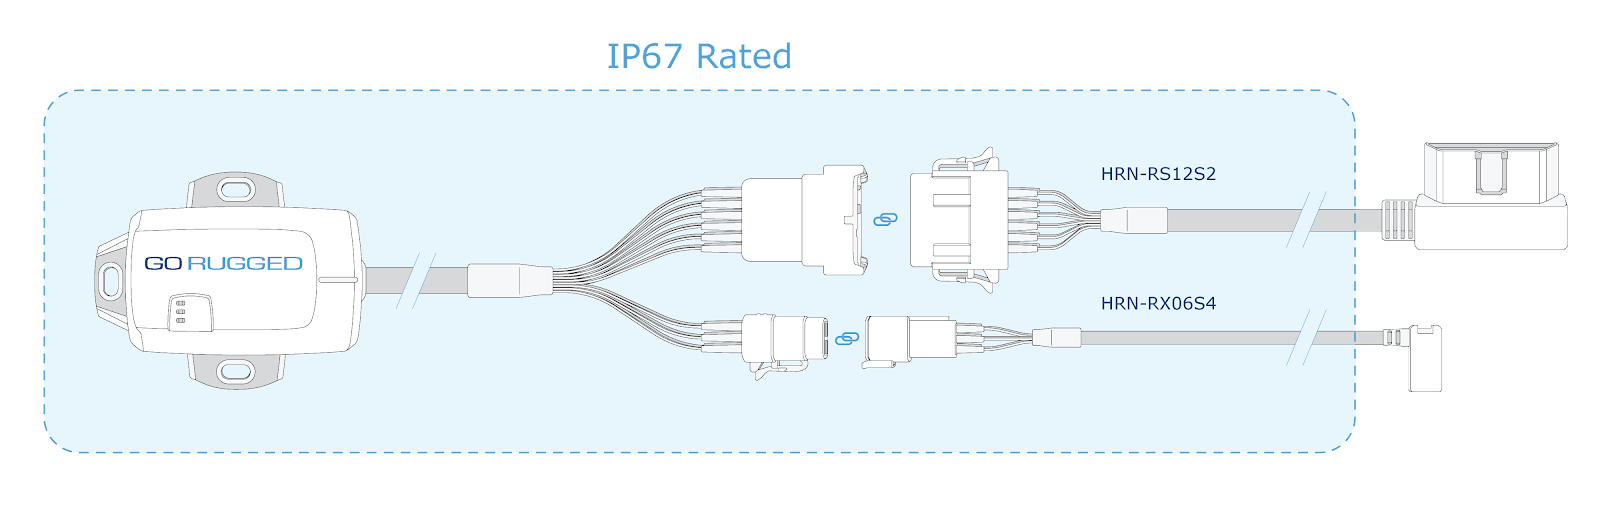 go-rugged-ip67-rating-diagram-v1.png